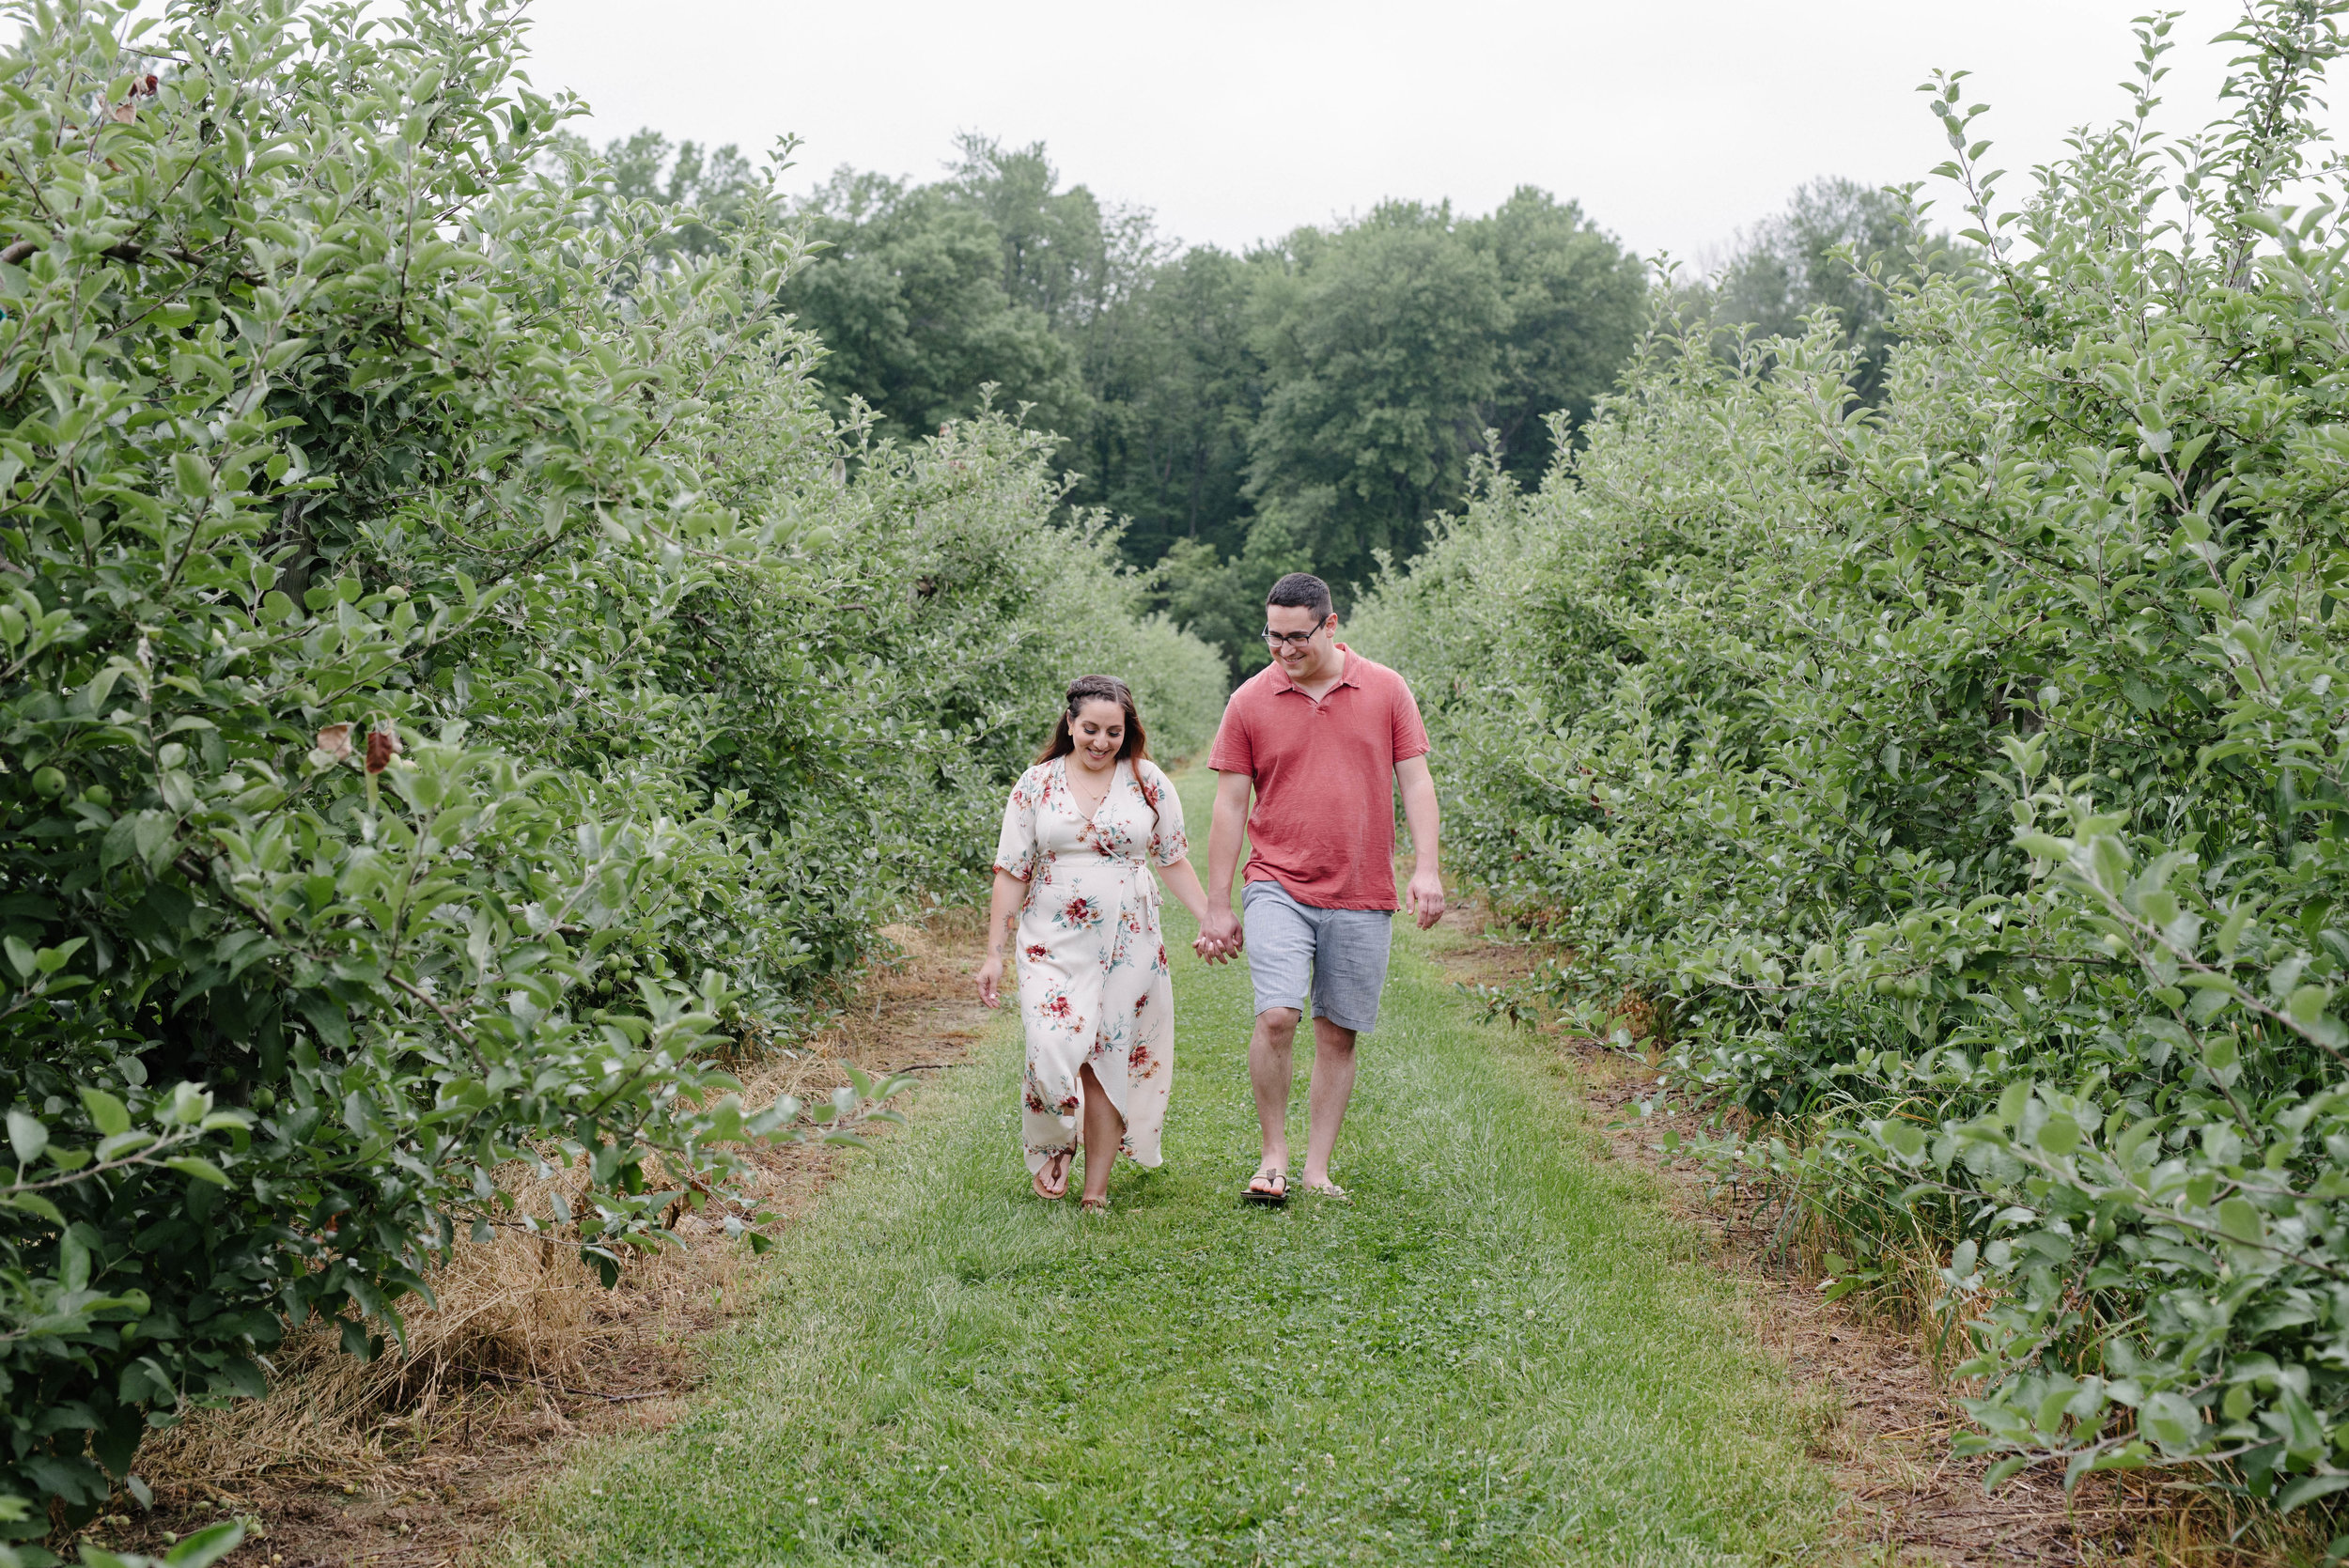 Lauren+Matt- Princeton Engagement Session- Terhune Orchards- New Jersey- Olivia Christina Photo-40.jpg